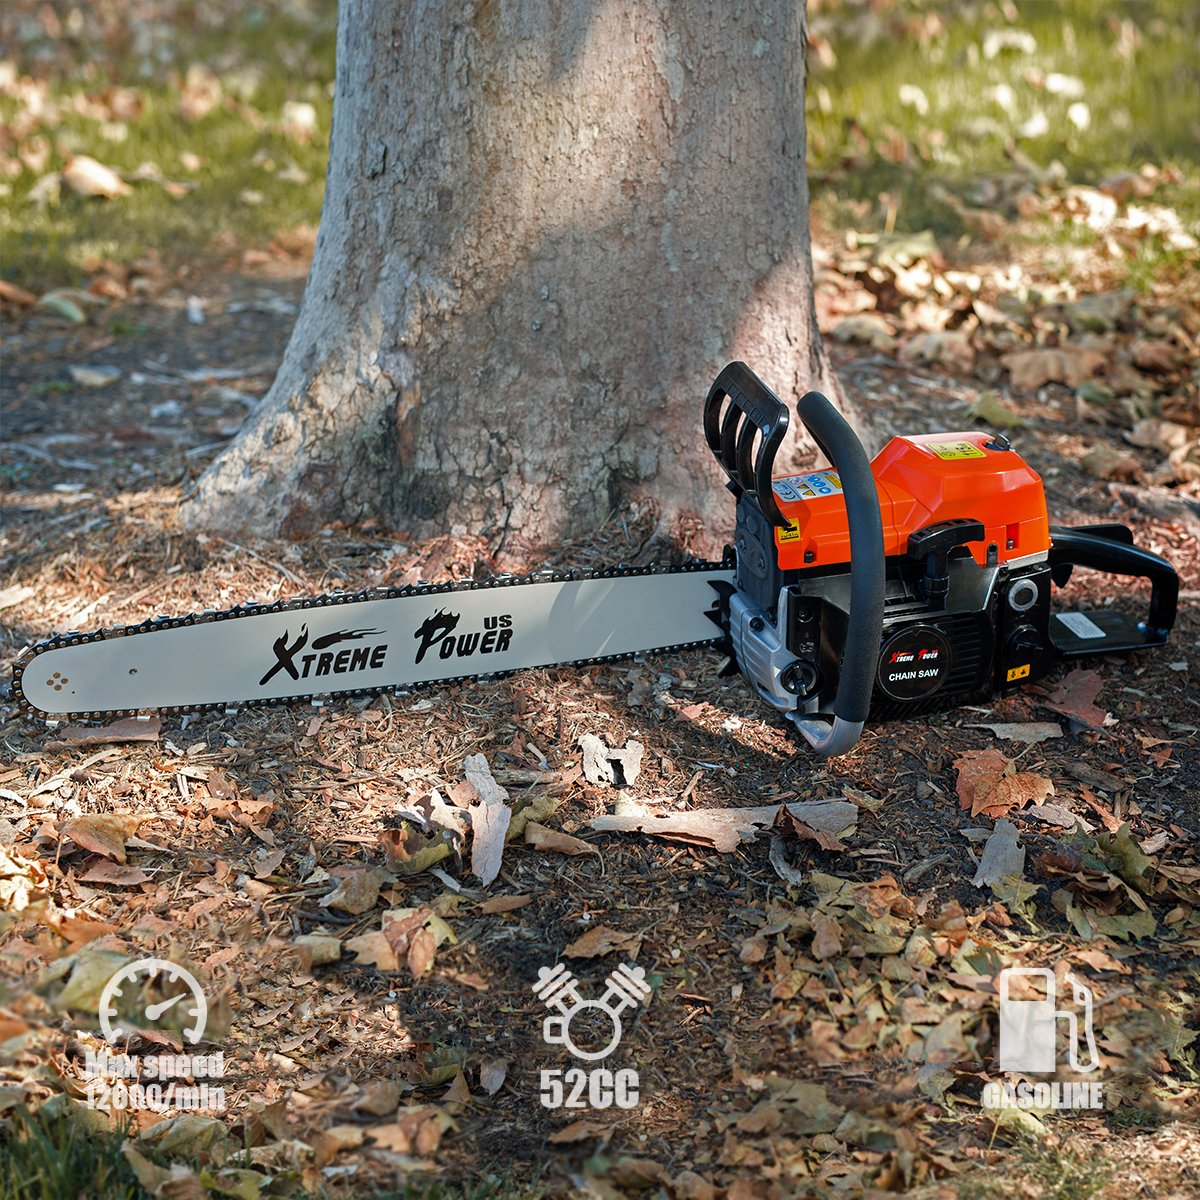 XtremepowerUS 52cc 2 Stroke Chainsaws product image 2